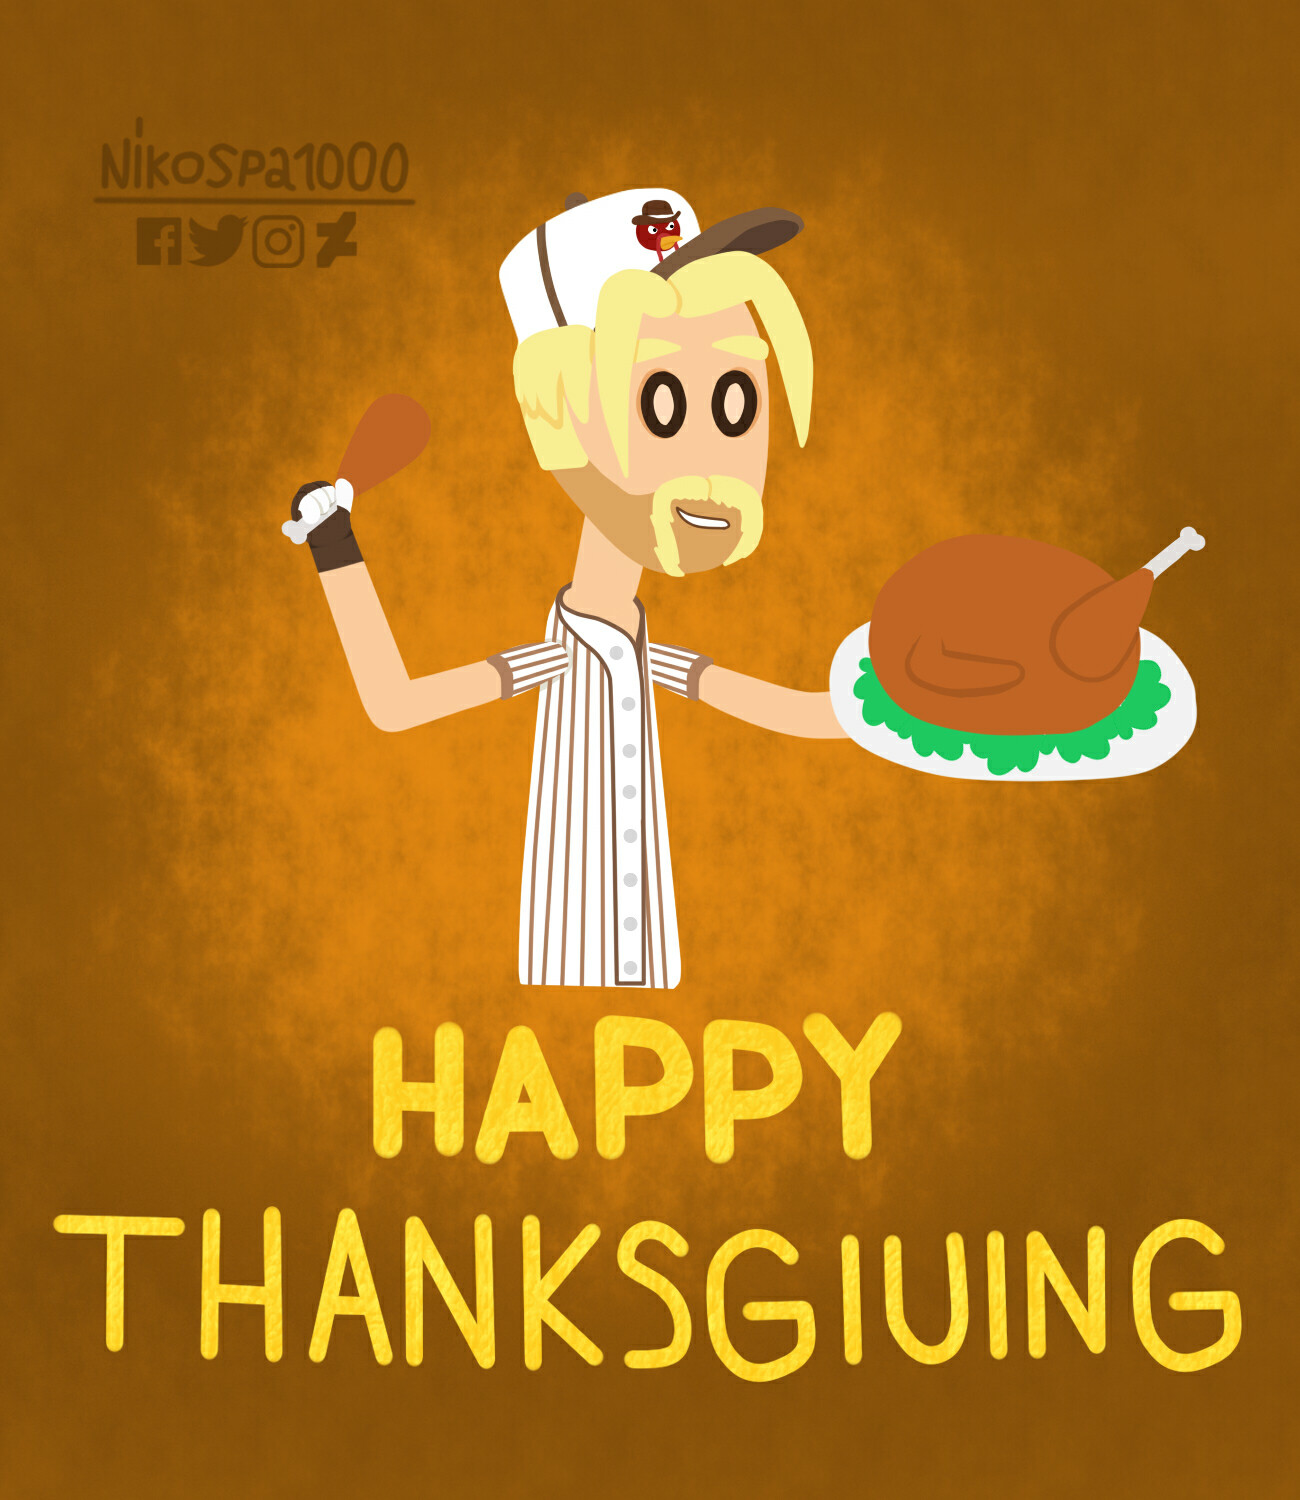 Happy Thanksgiving to Pinch Hitwell